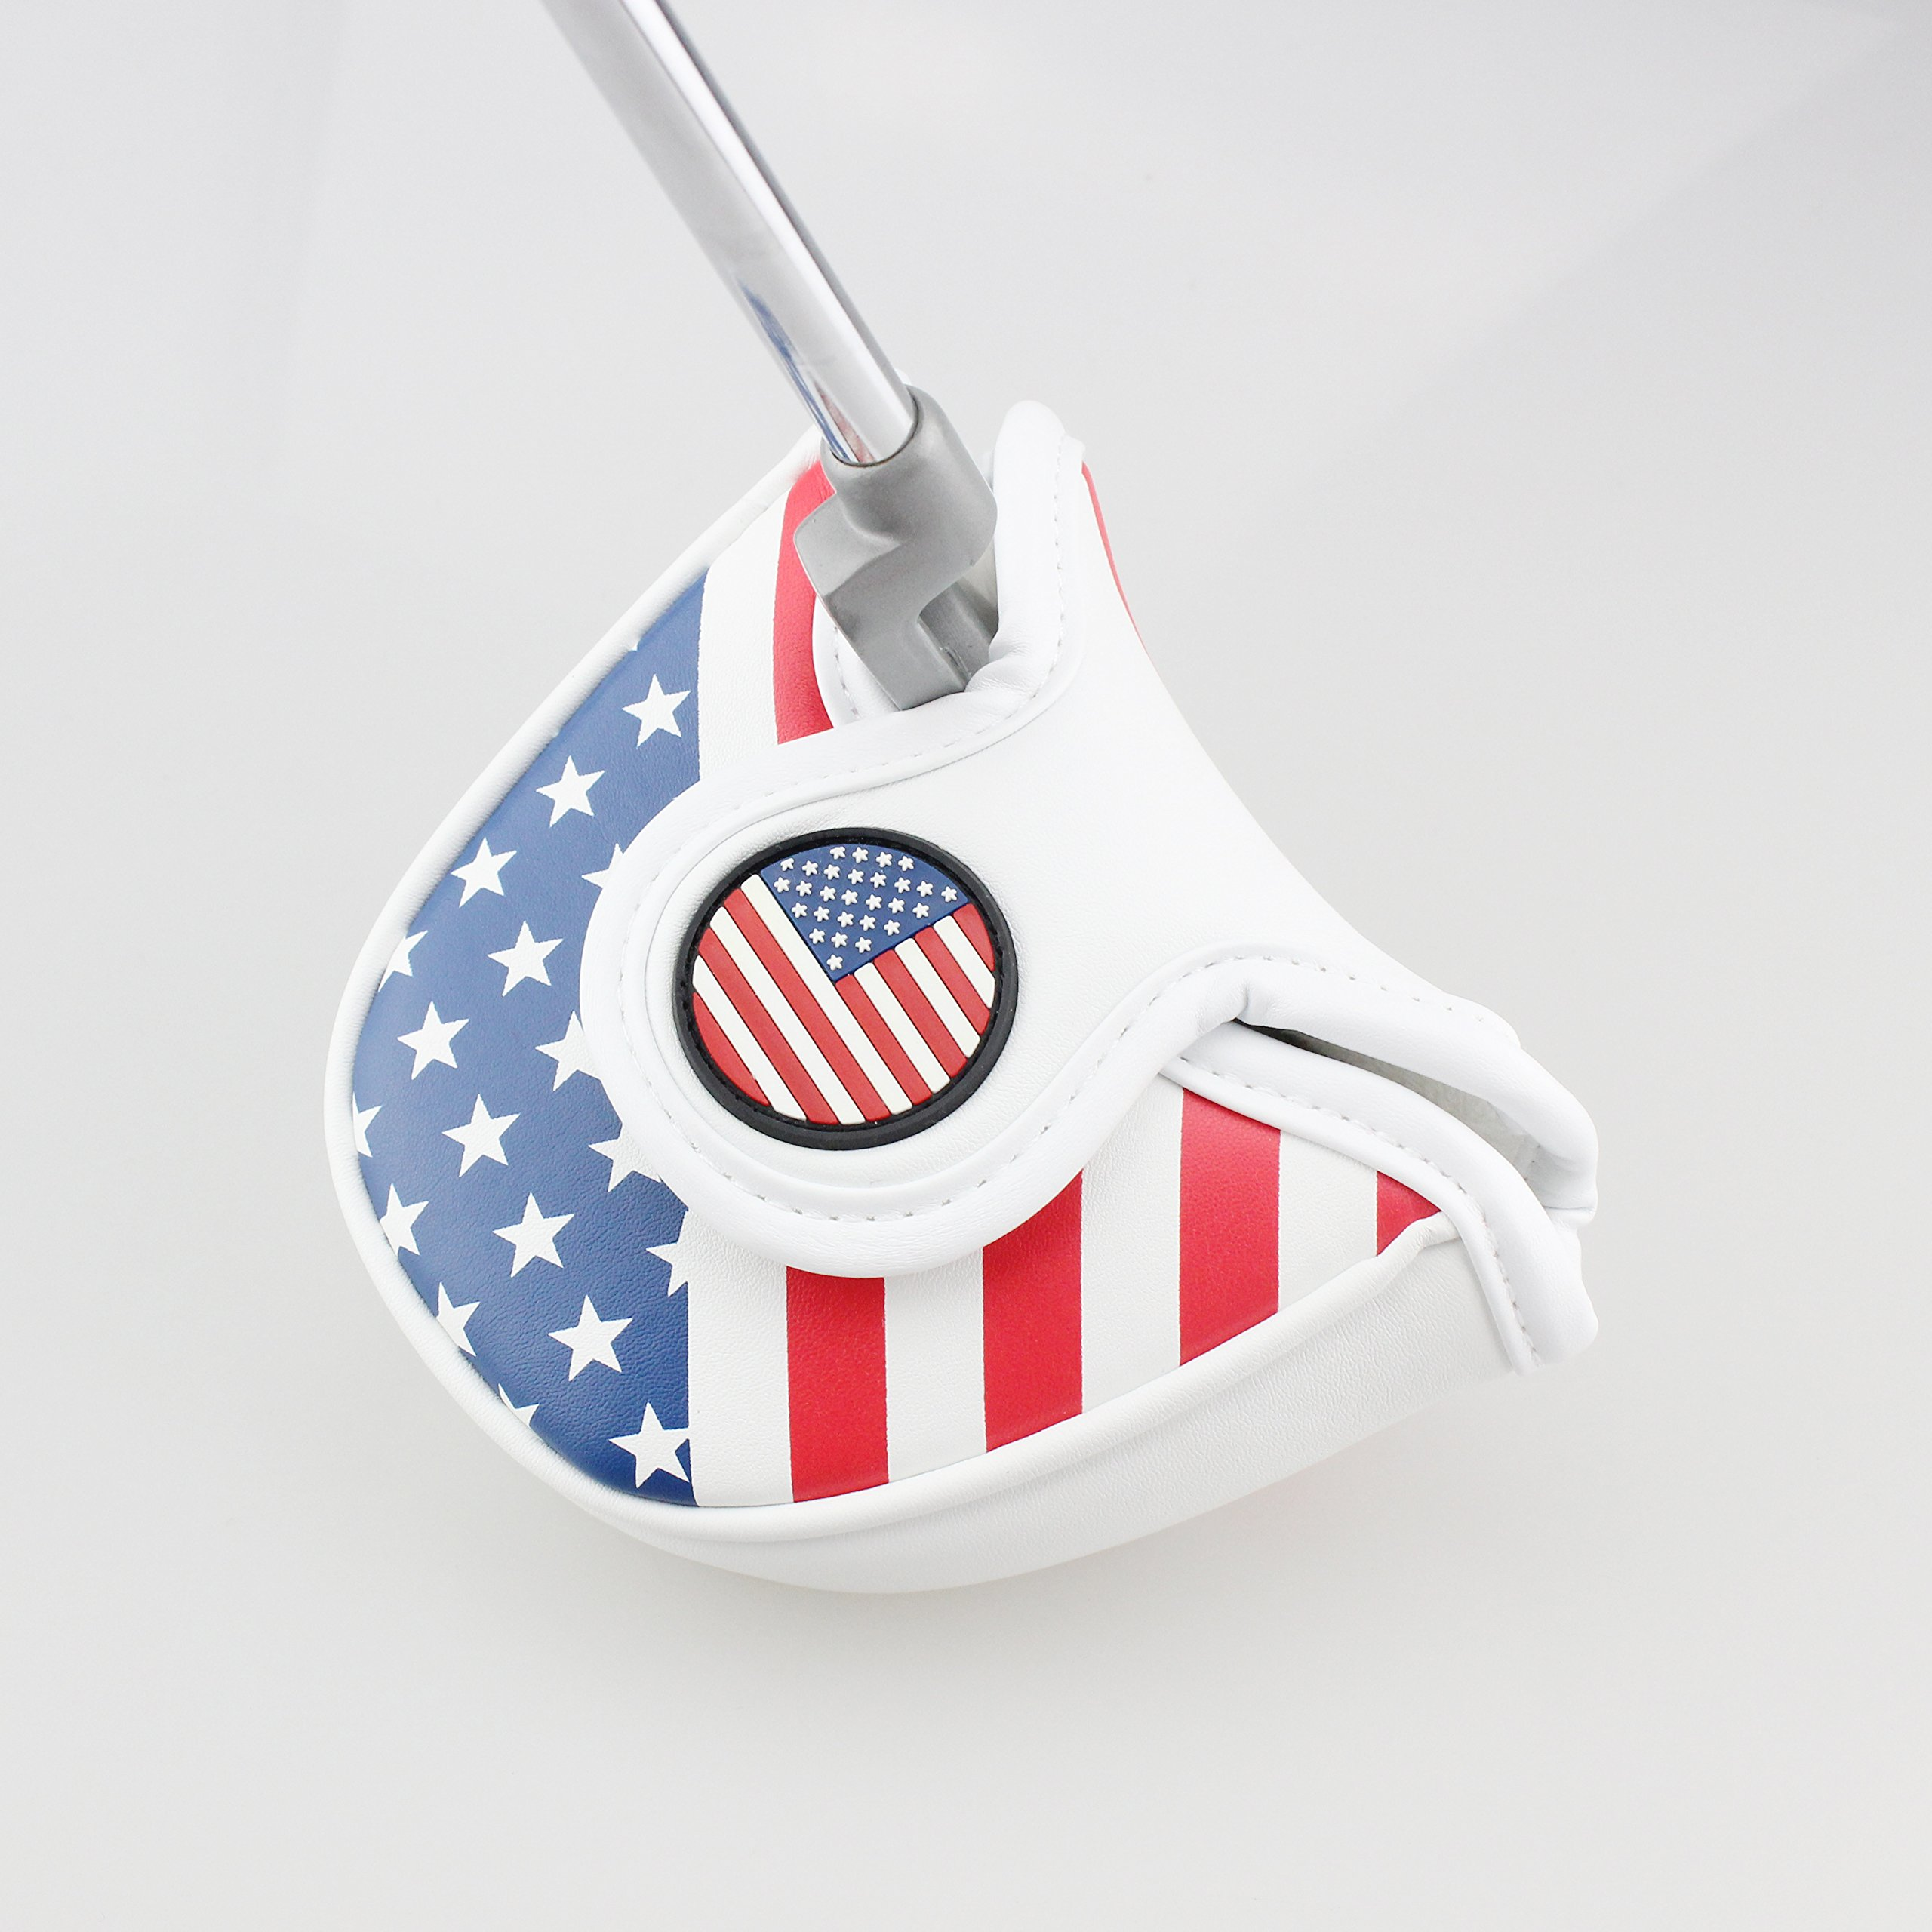 Crestgolf Golf USA AMERICA MALLET Putter Cover Headcover For Odyssey with Smart Design and Perfect Quality